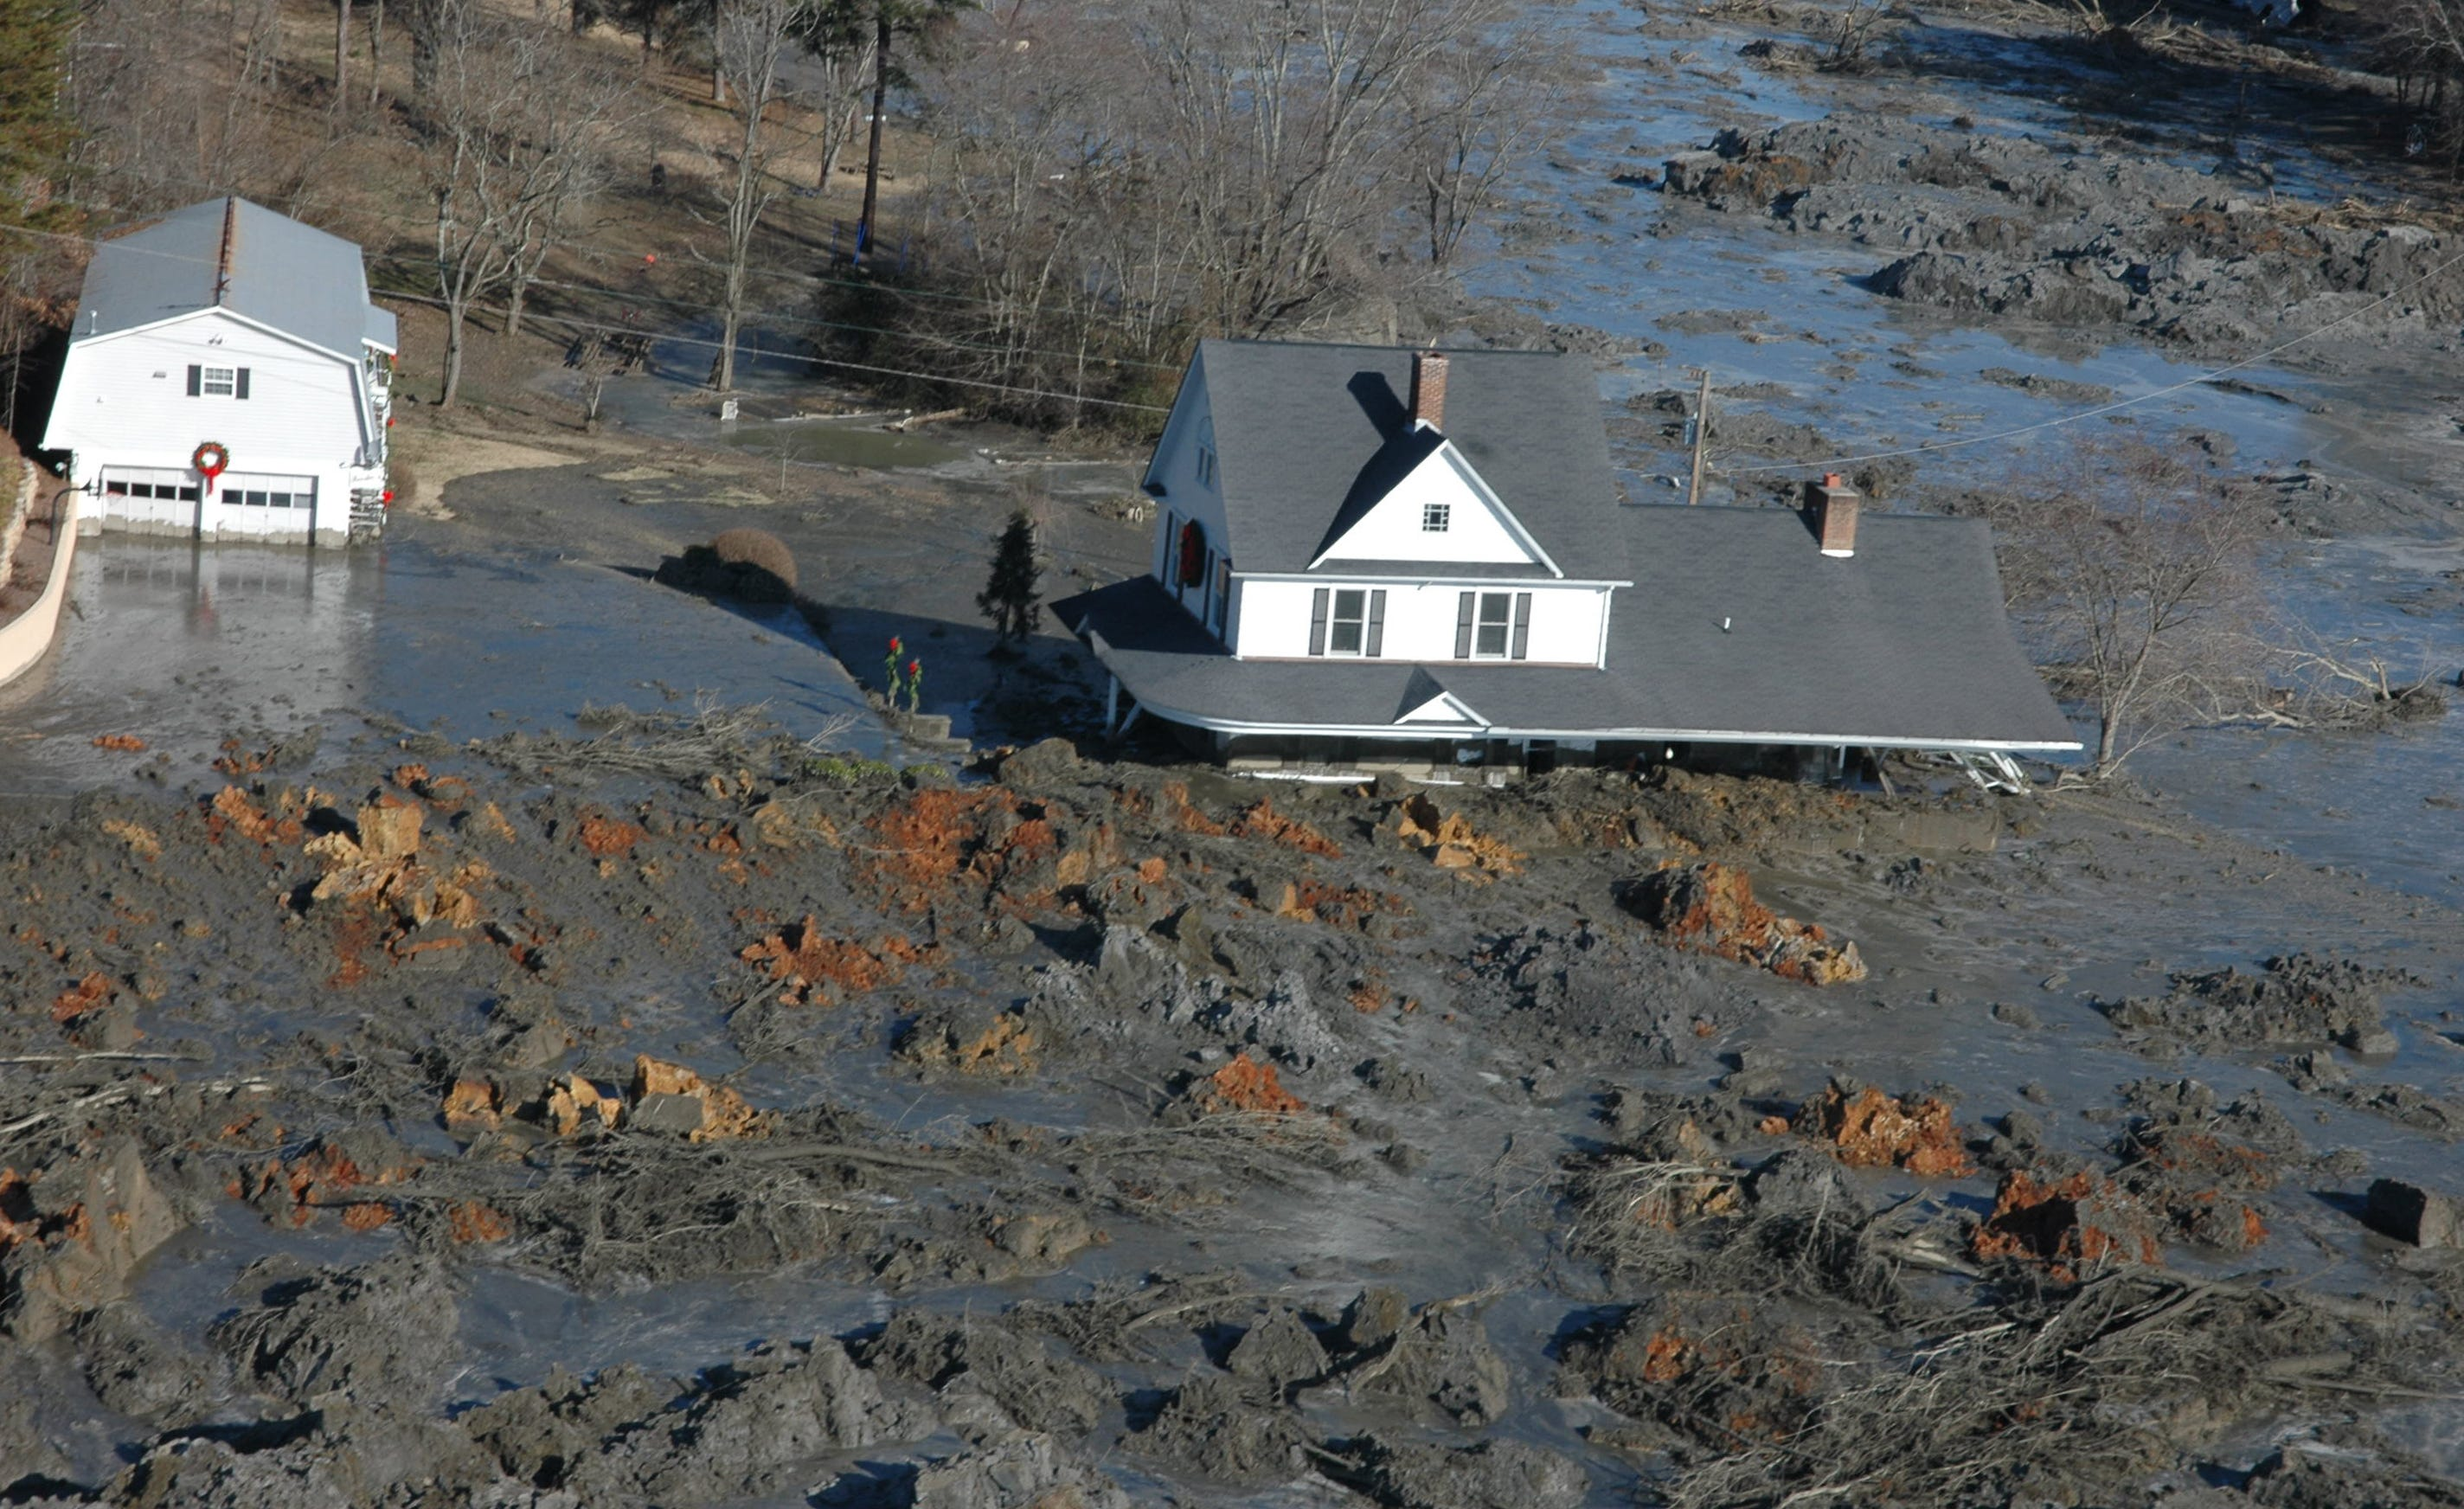 Tennessee coal ash spill workers treated as  expendables